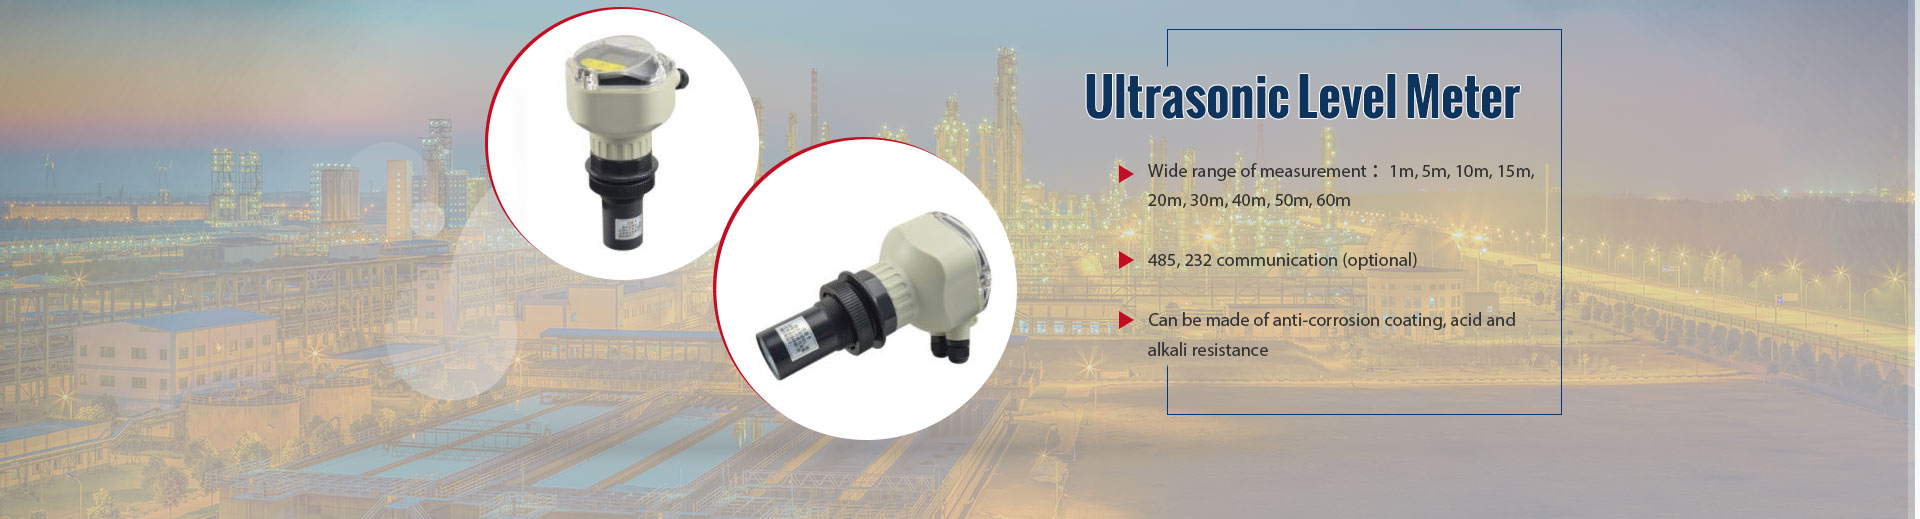 Ultrasonic Level Meter